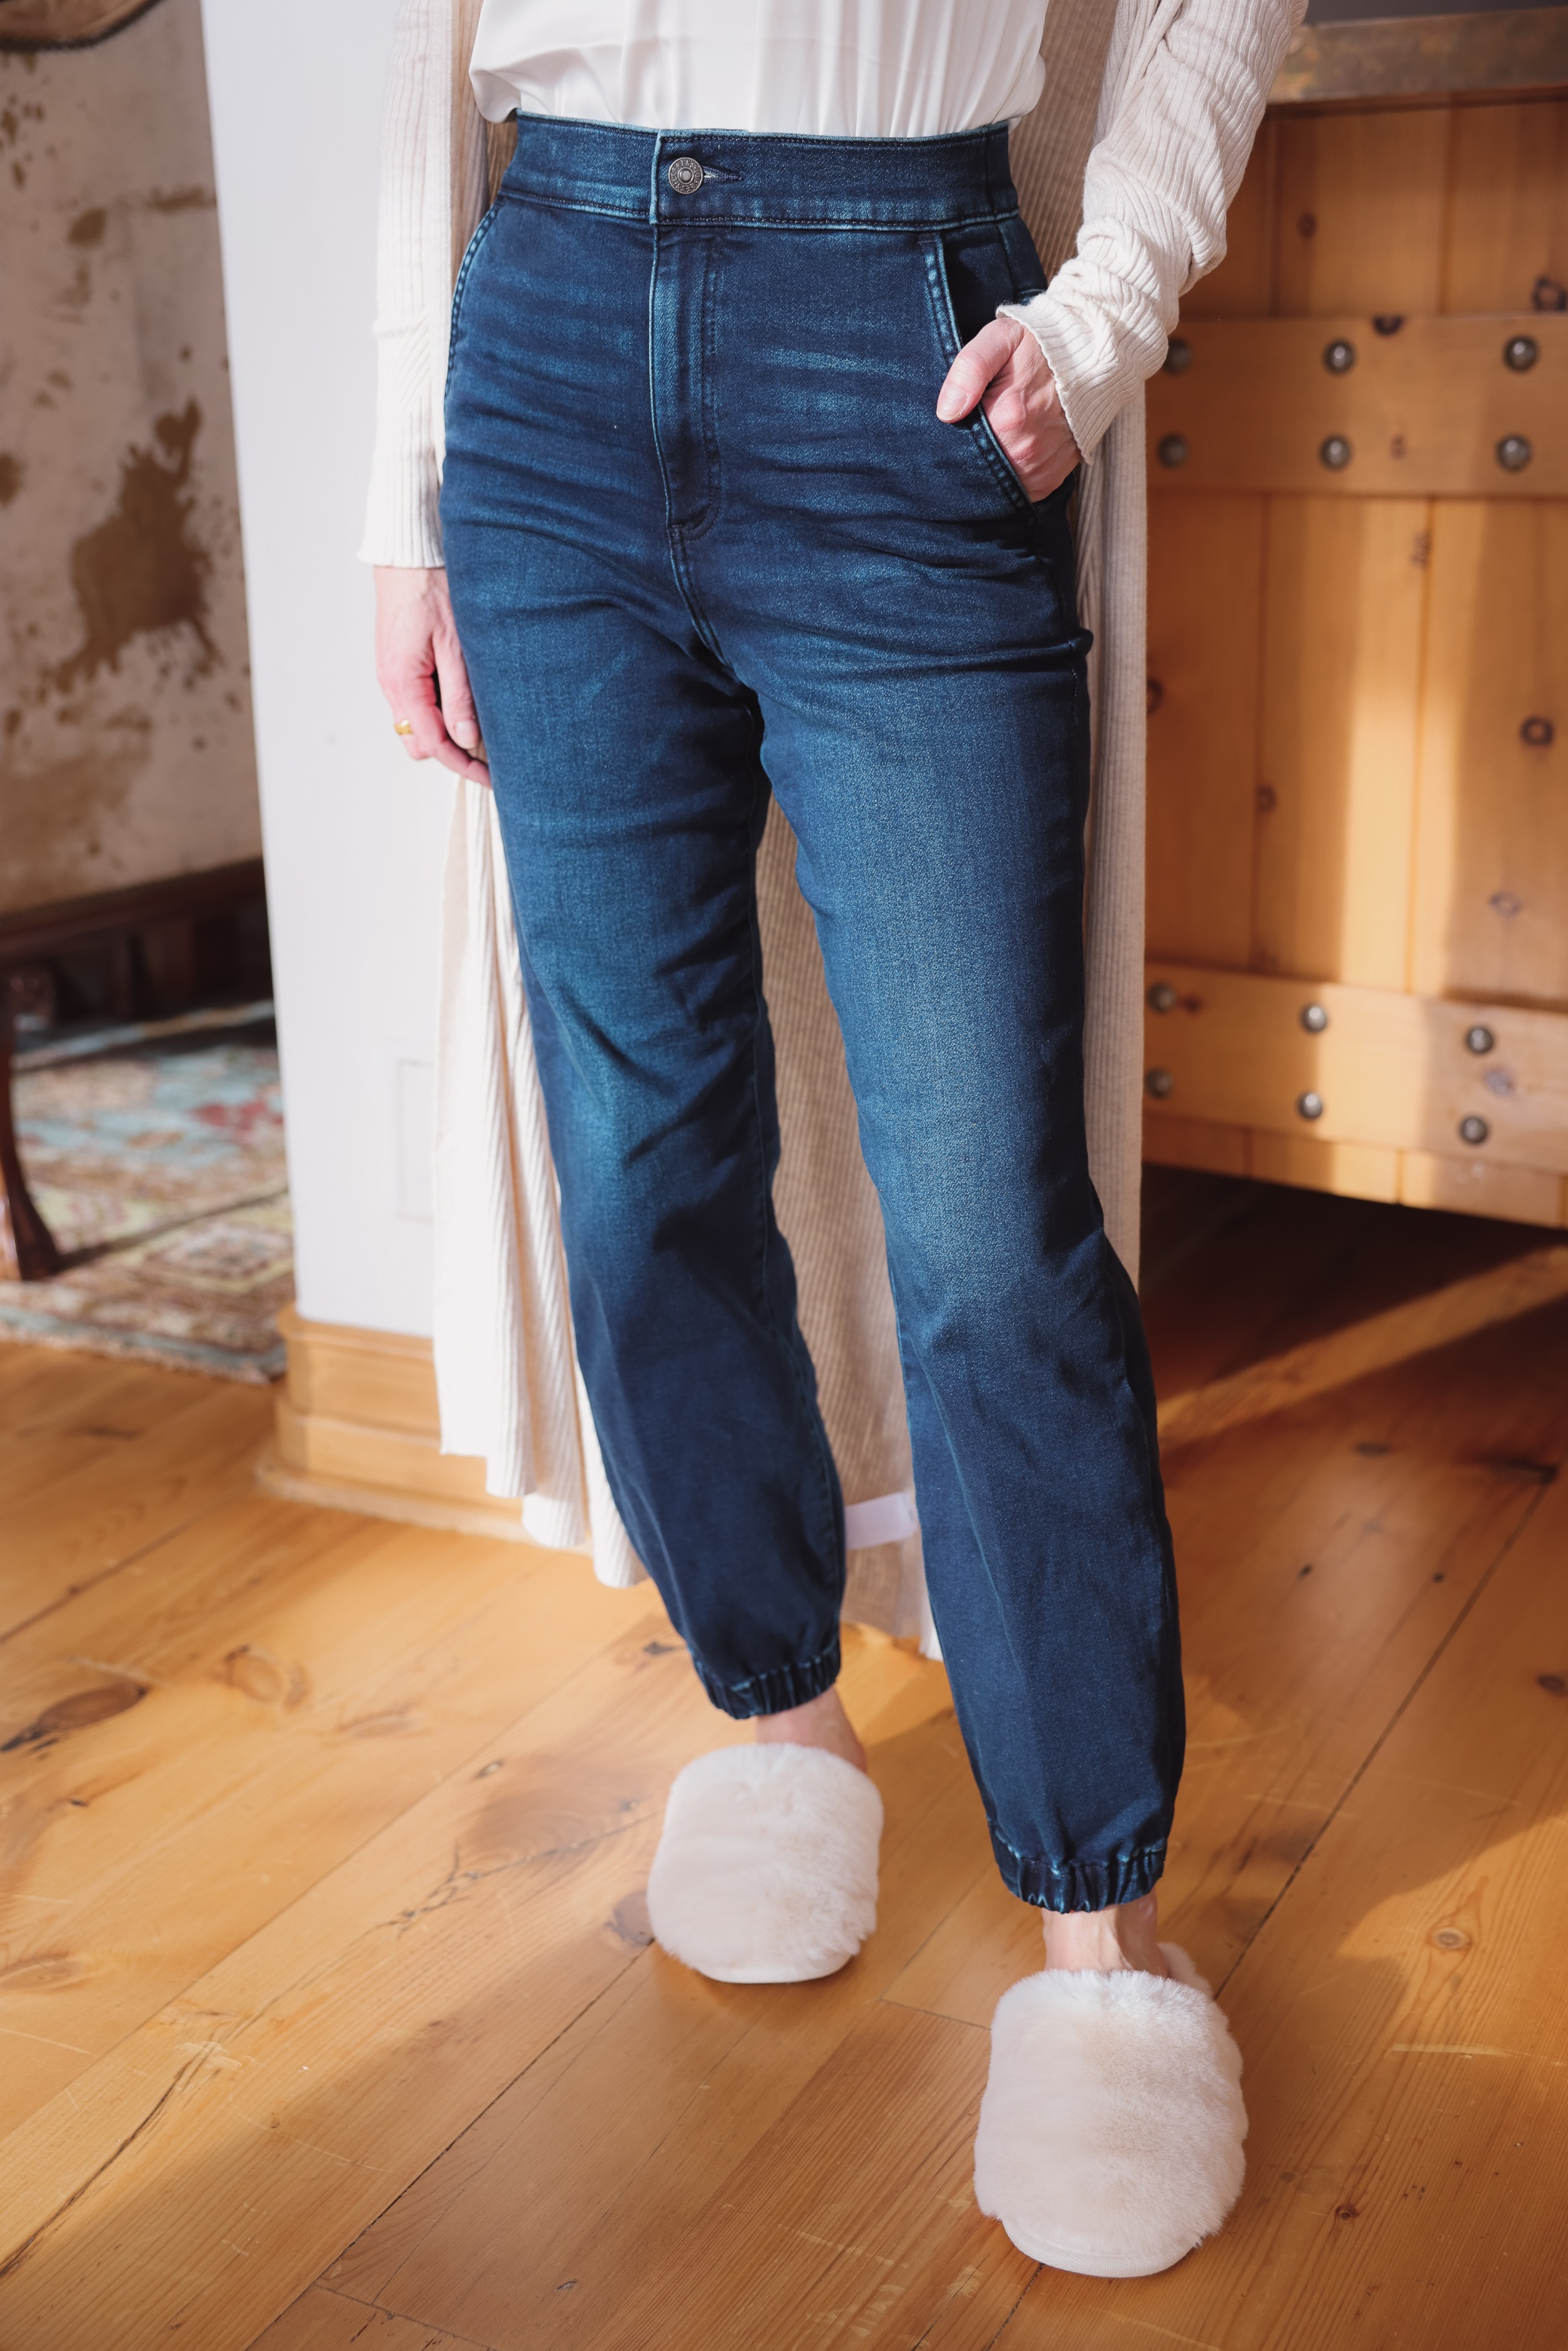 Express Sale, Erin Busbee of Busbee wearing denim joggers, a white satin cami, long ribbed duster cardigan, and slippers from Express in Telluride, Colorado